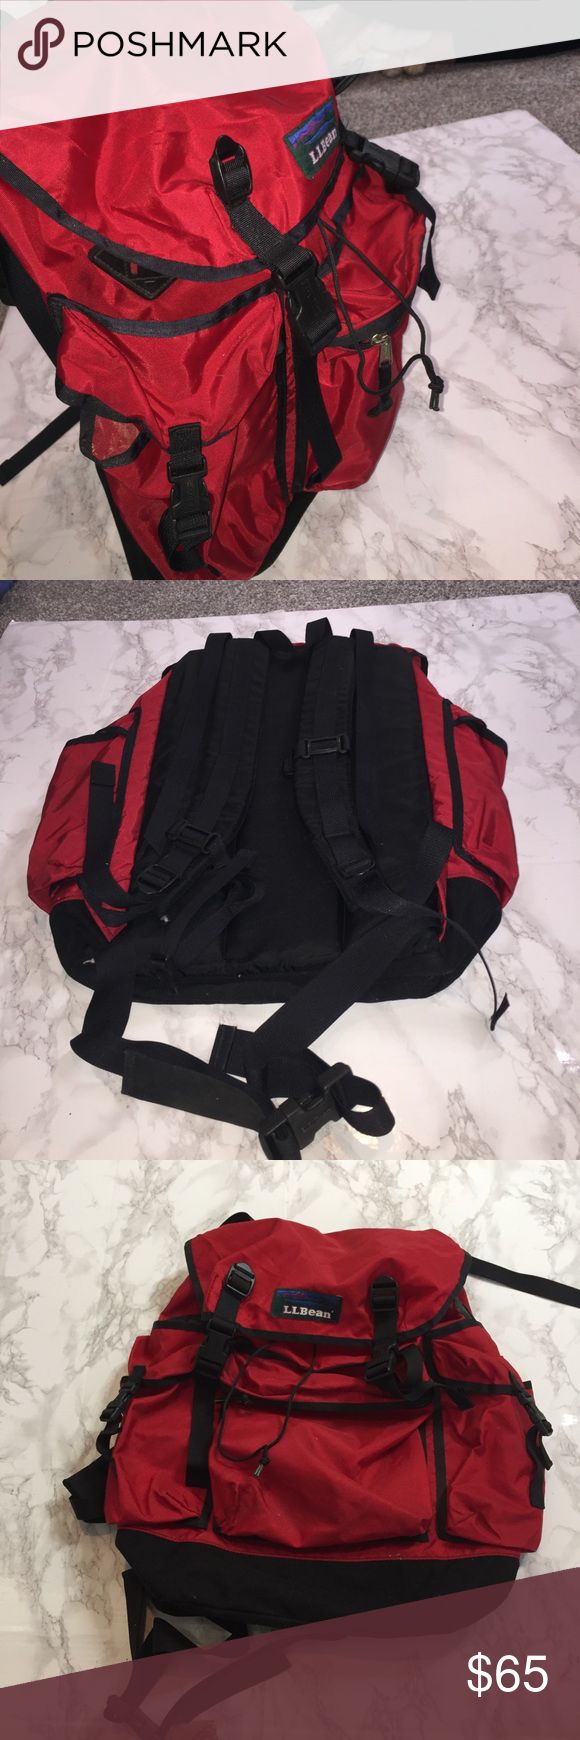 L.L. Bean Hiking Backpack! Great condition. High quality brand. Many large compartments. A supportive back. Washed. Some wear in the inner Top pictured above. Draw string main sack with a buckled cover. Straps to carry a sleeping bag or mat on top of the pack. Adjustable belt buckle for the waist for more even weight distribution. L.L. Bean Bags Backpacks